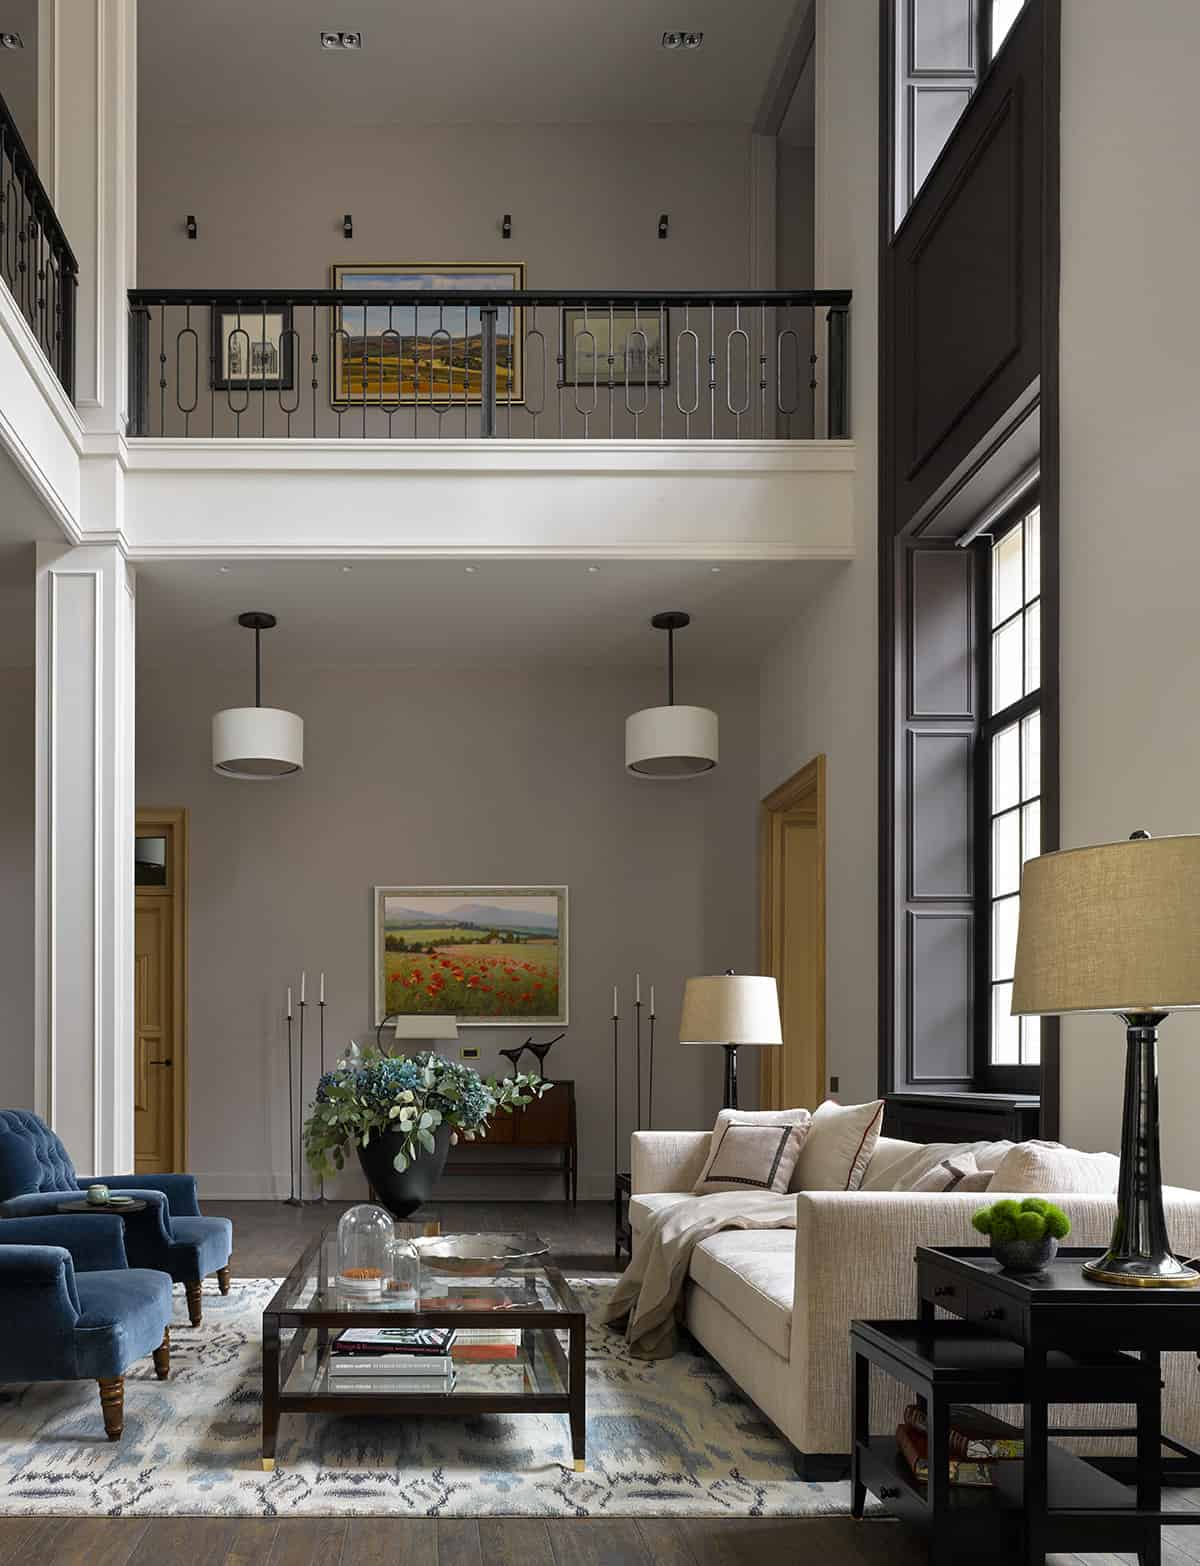 Living Room Feature Wall Decor: 100 Living Rooms Without A Fireplace (Photos